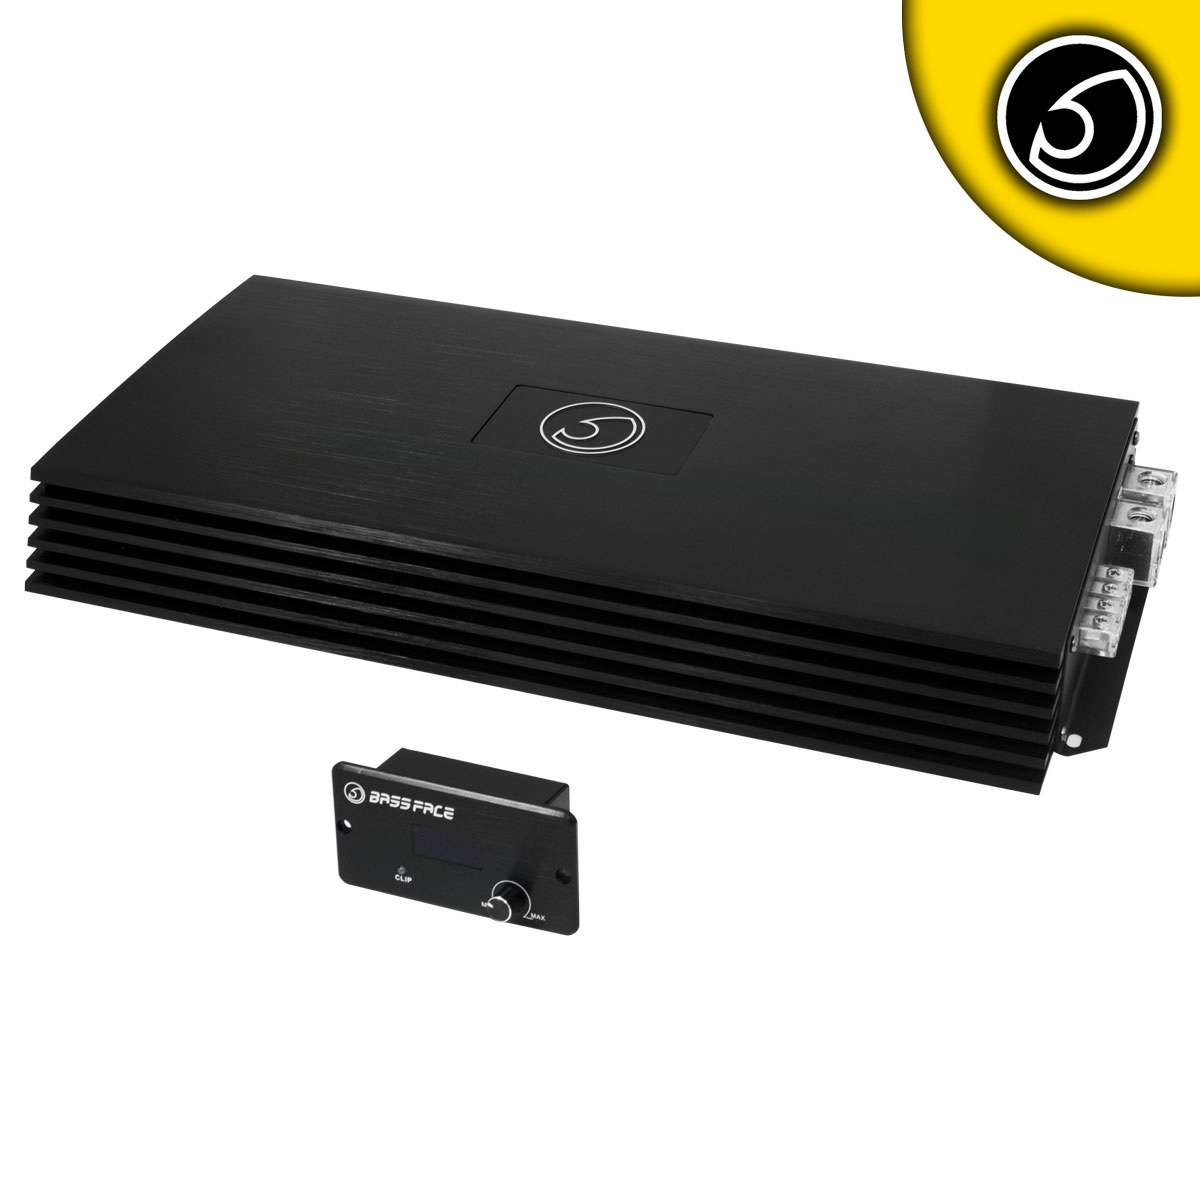 507d8100450be Bassface DB1.3 2130w 1Ohm Class D Monoblock Car Subwoofer Amplifier Bass  SPL Amp